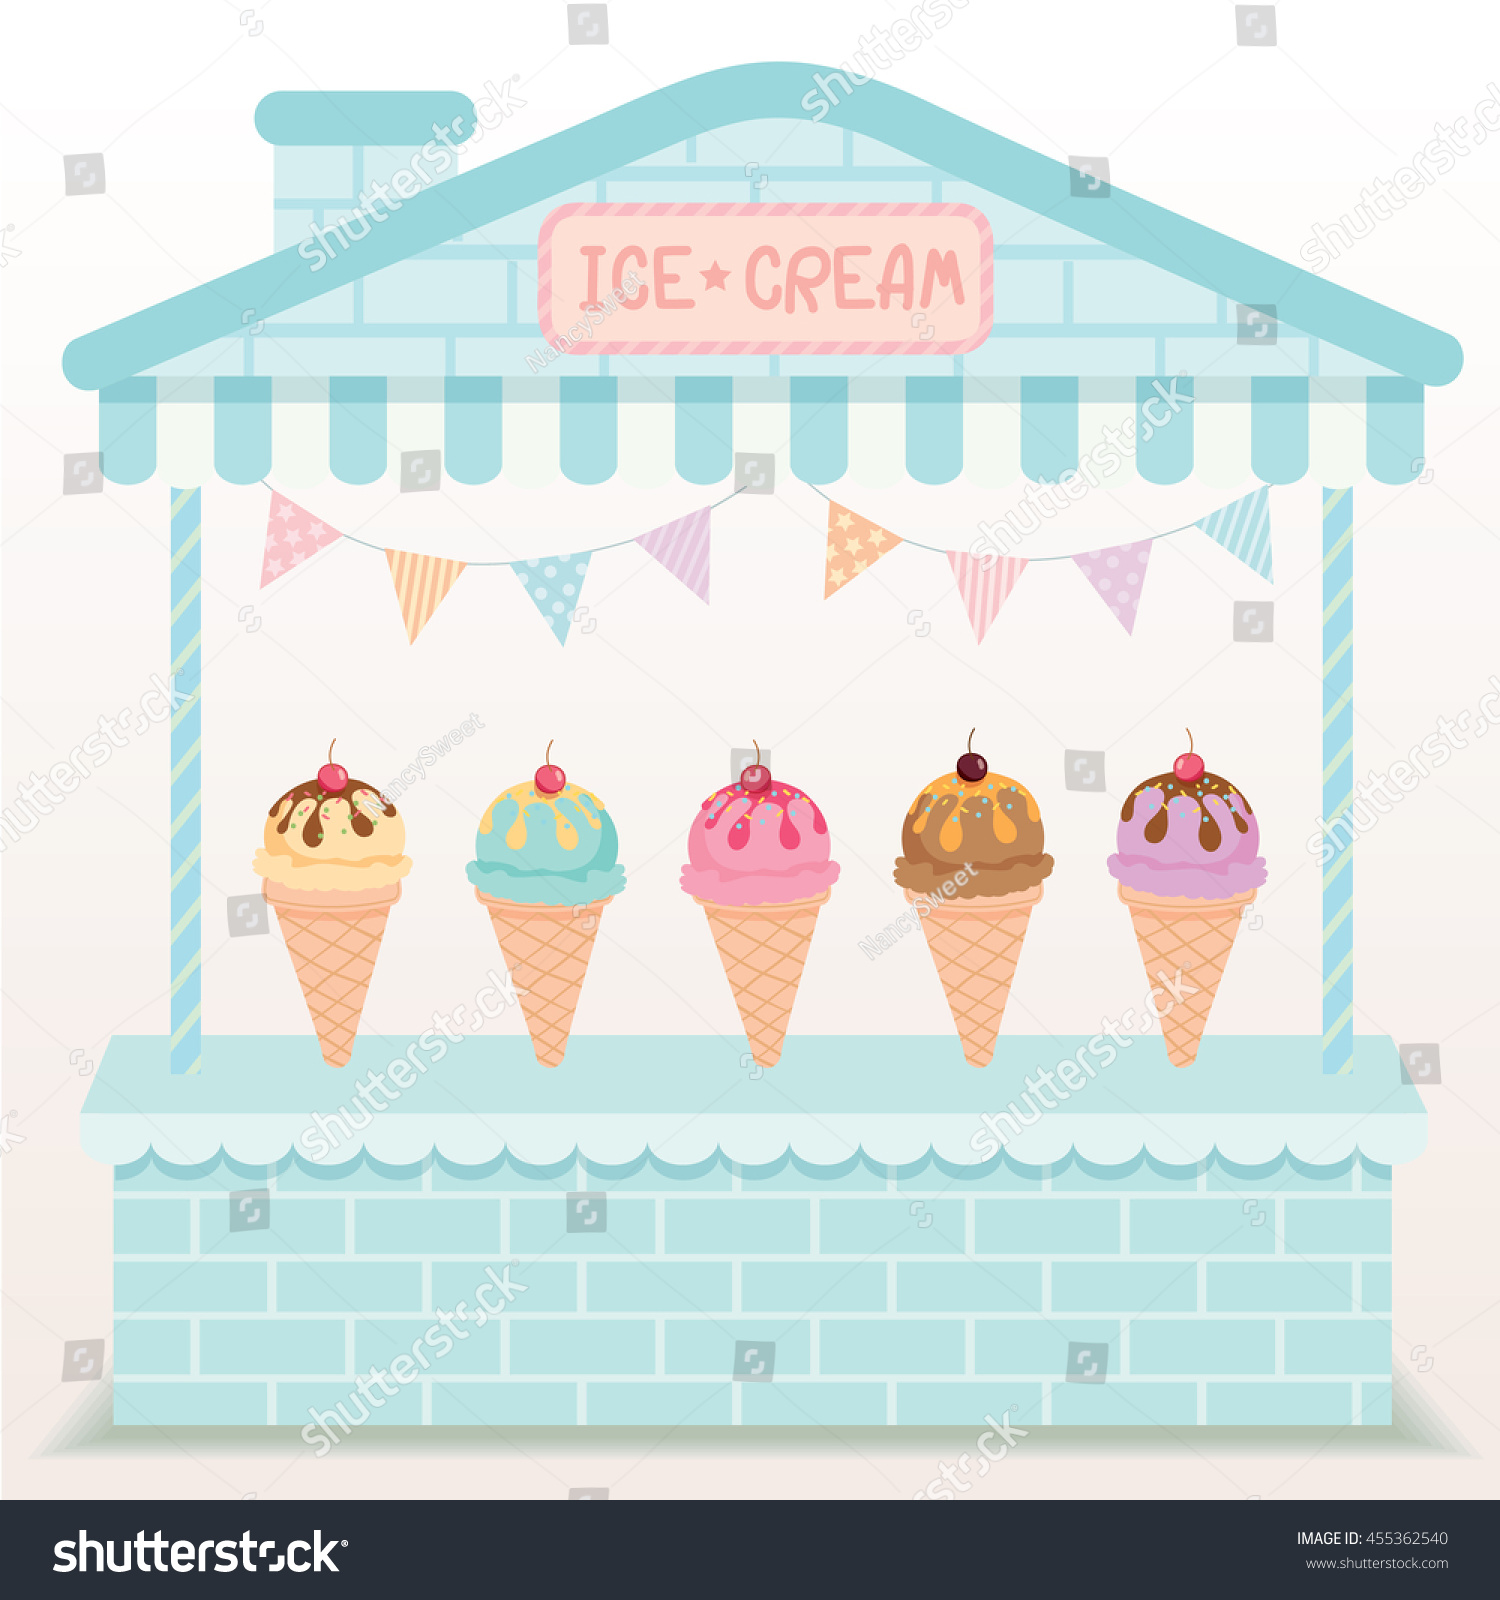 illustration various icecream cone cafe display stock vector